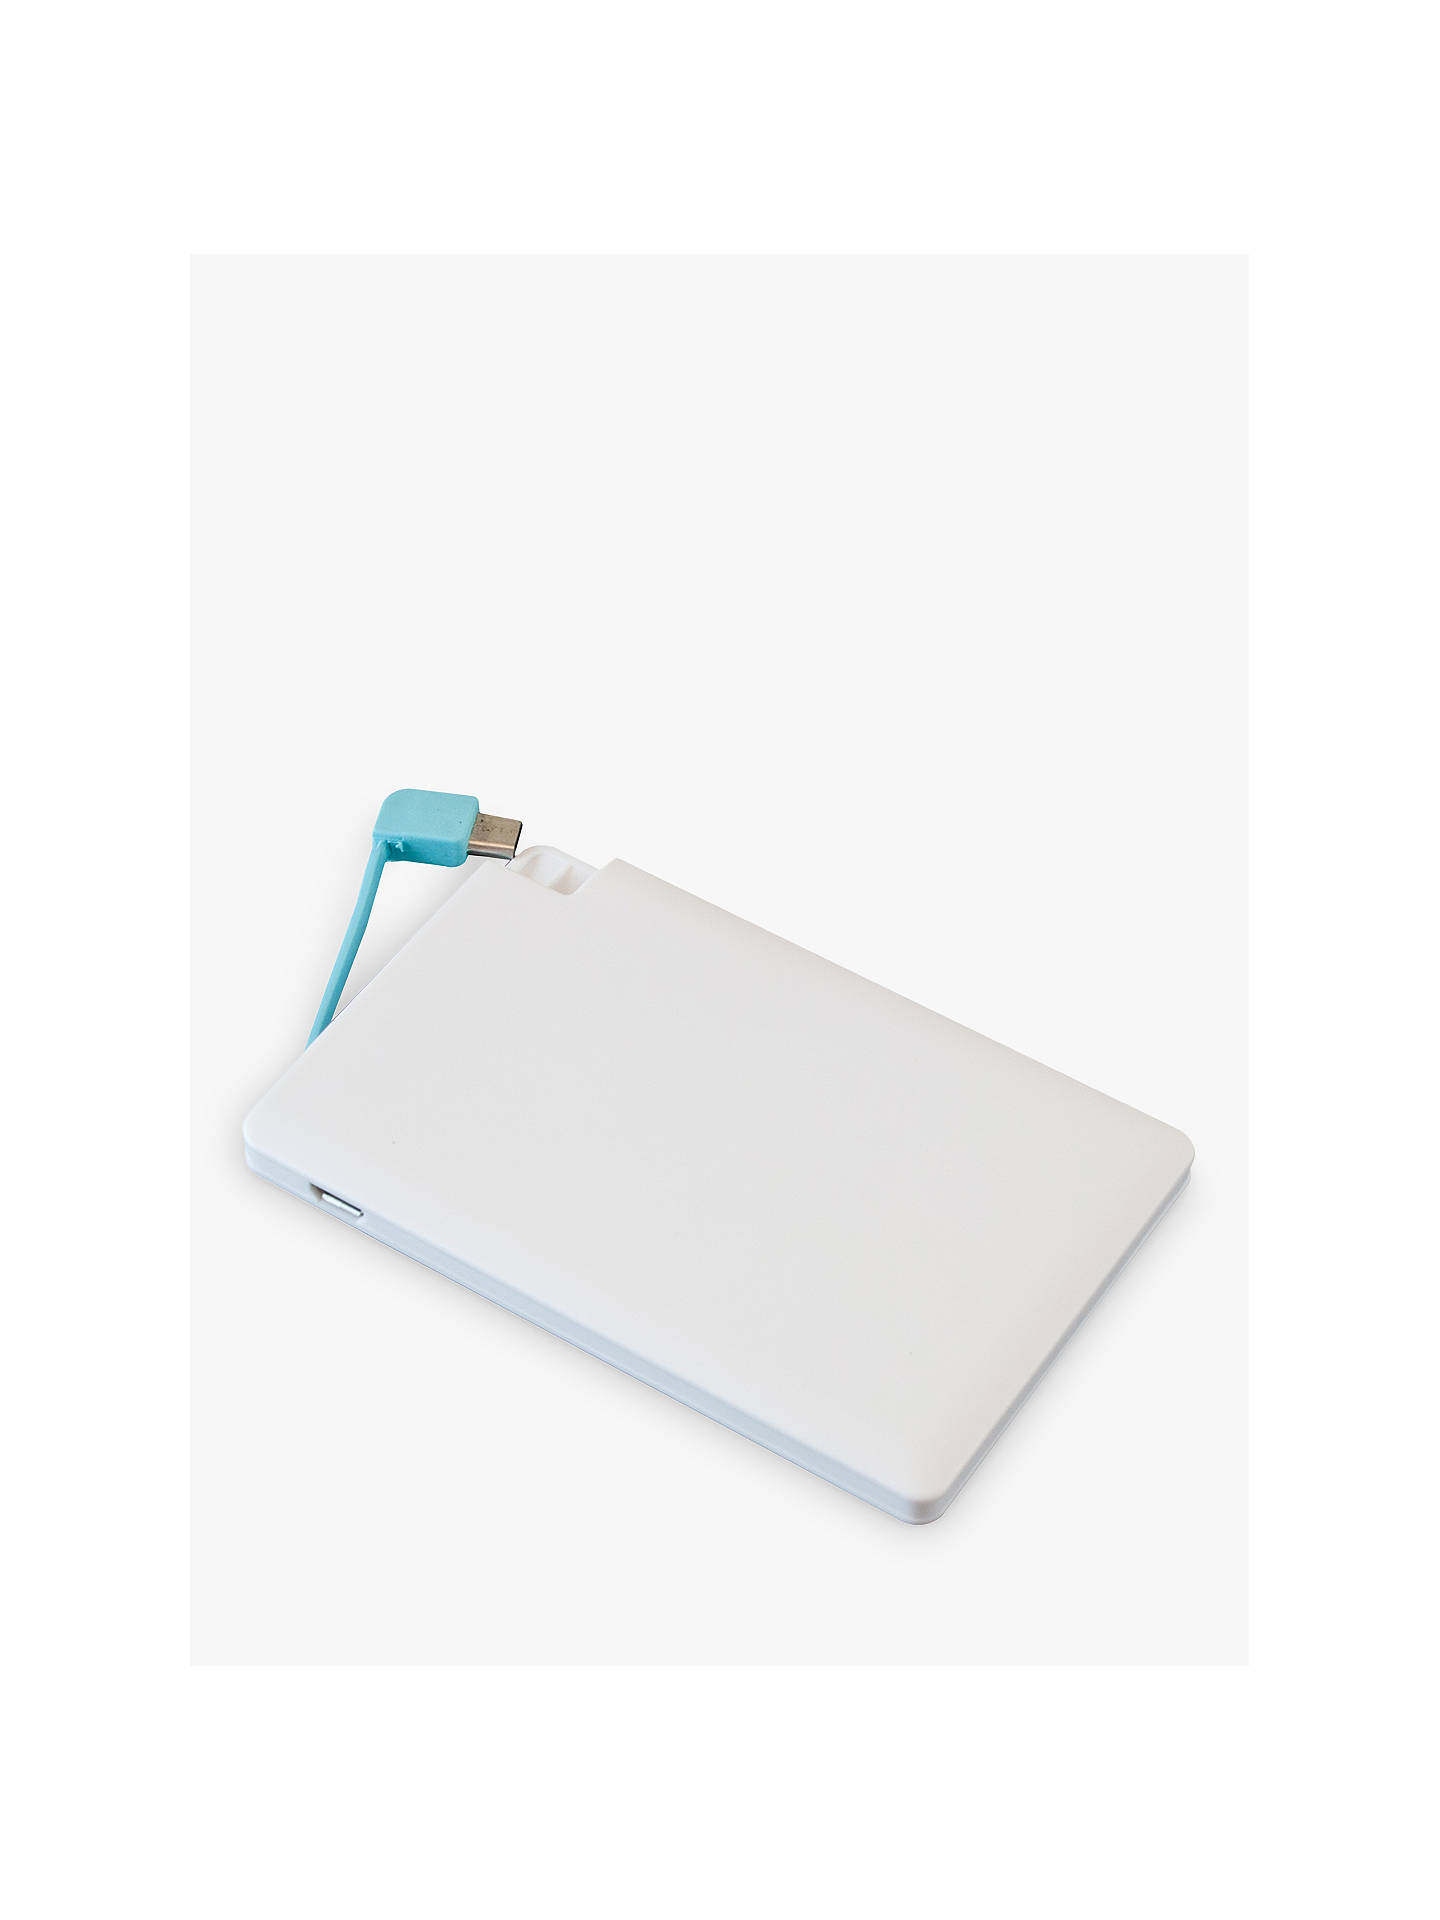 BuyRED5 Credit Card Power Bank Online at johnlewis.com